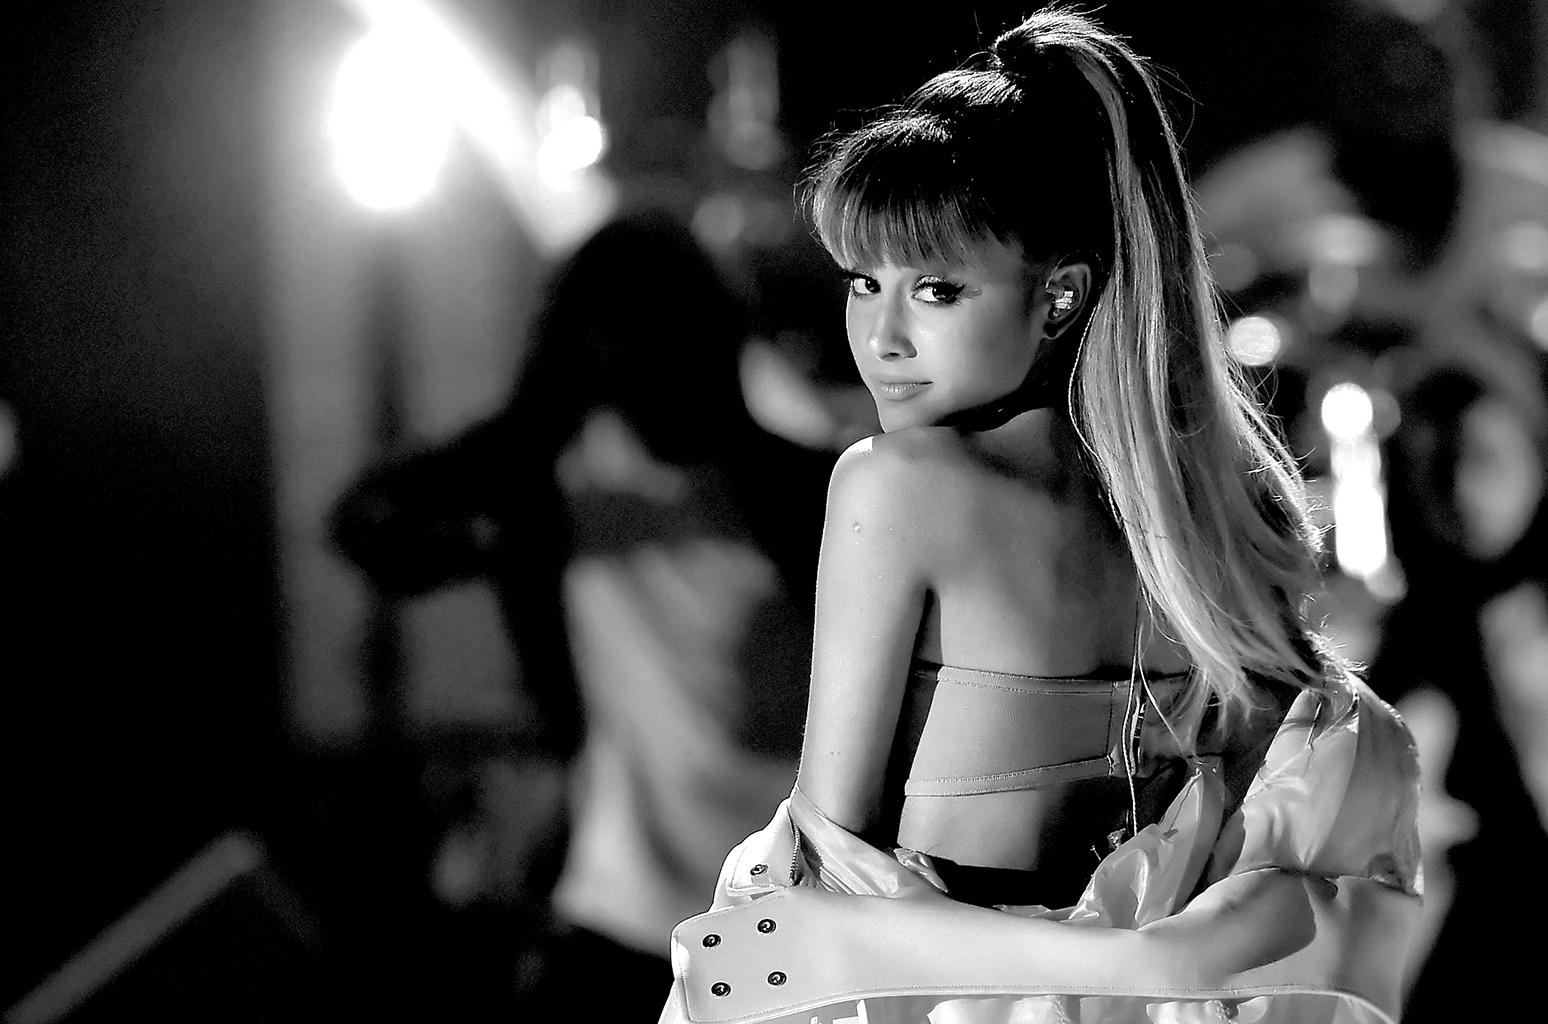 black and white ariana grande wallpaper 65103